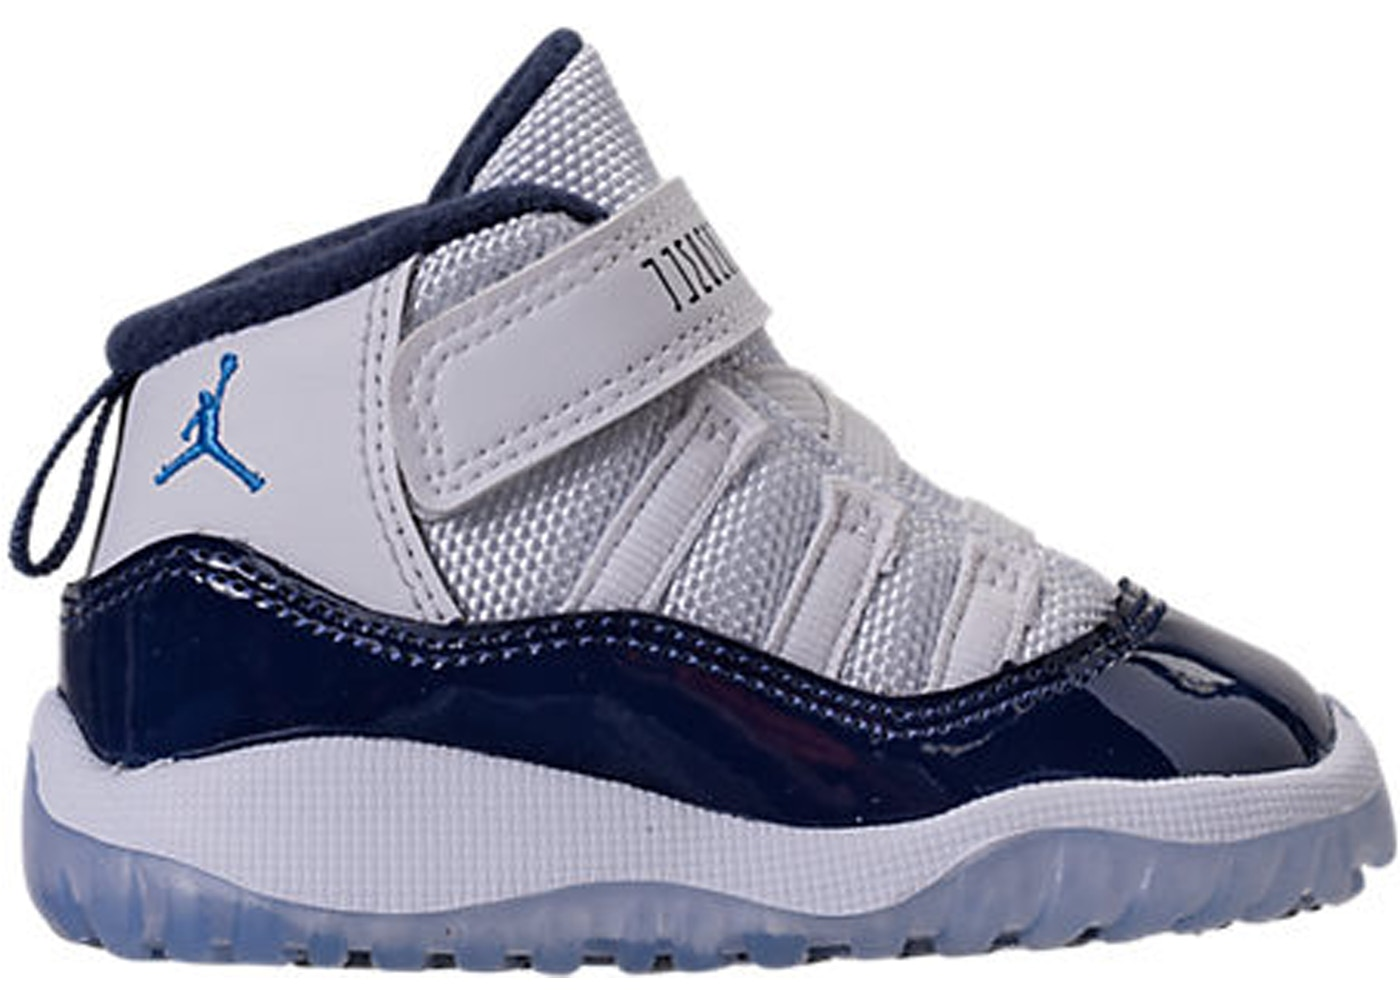 reputable site 34f6e 91408 Jordan 11 Retro UNC Win Like 82 (TD)